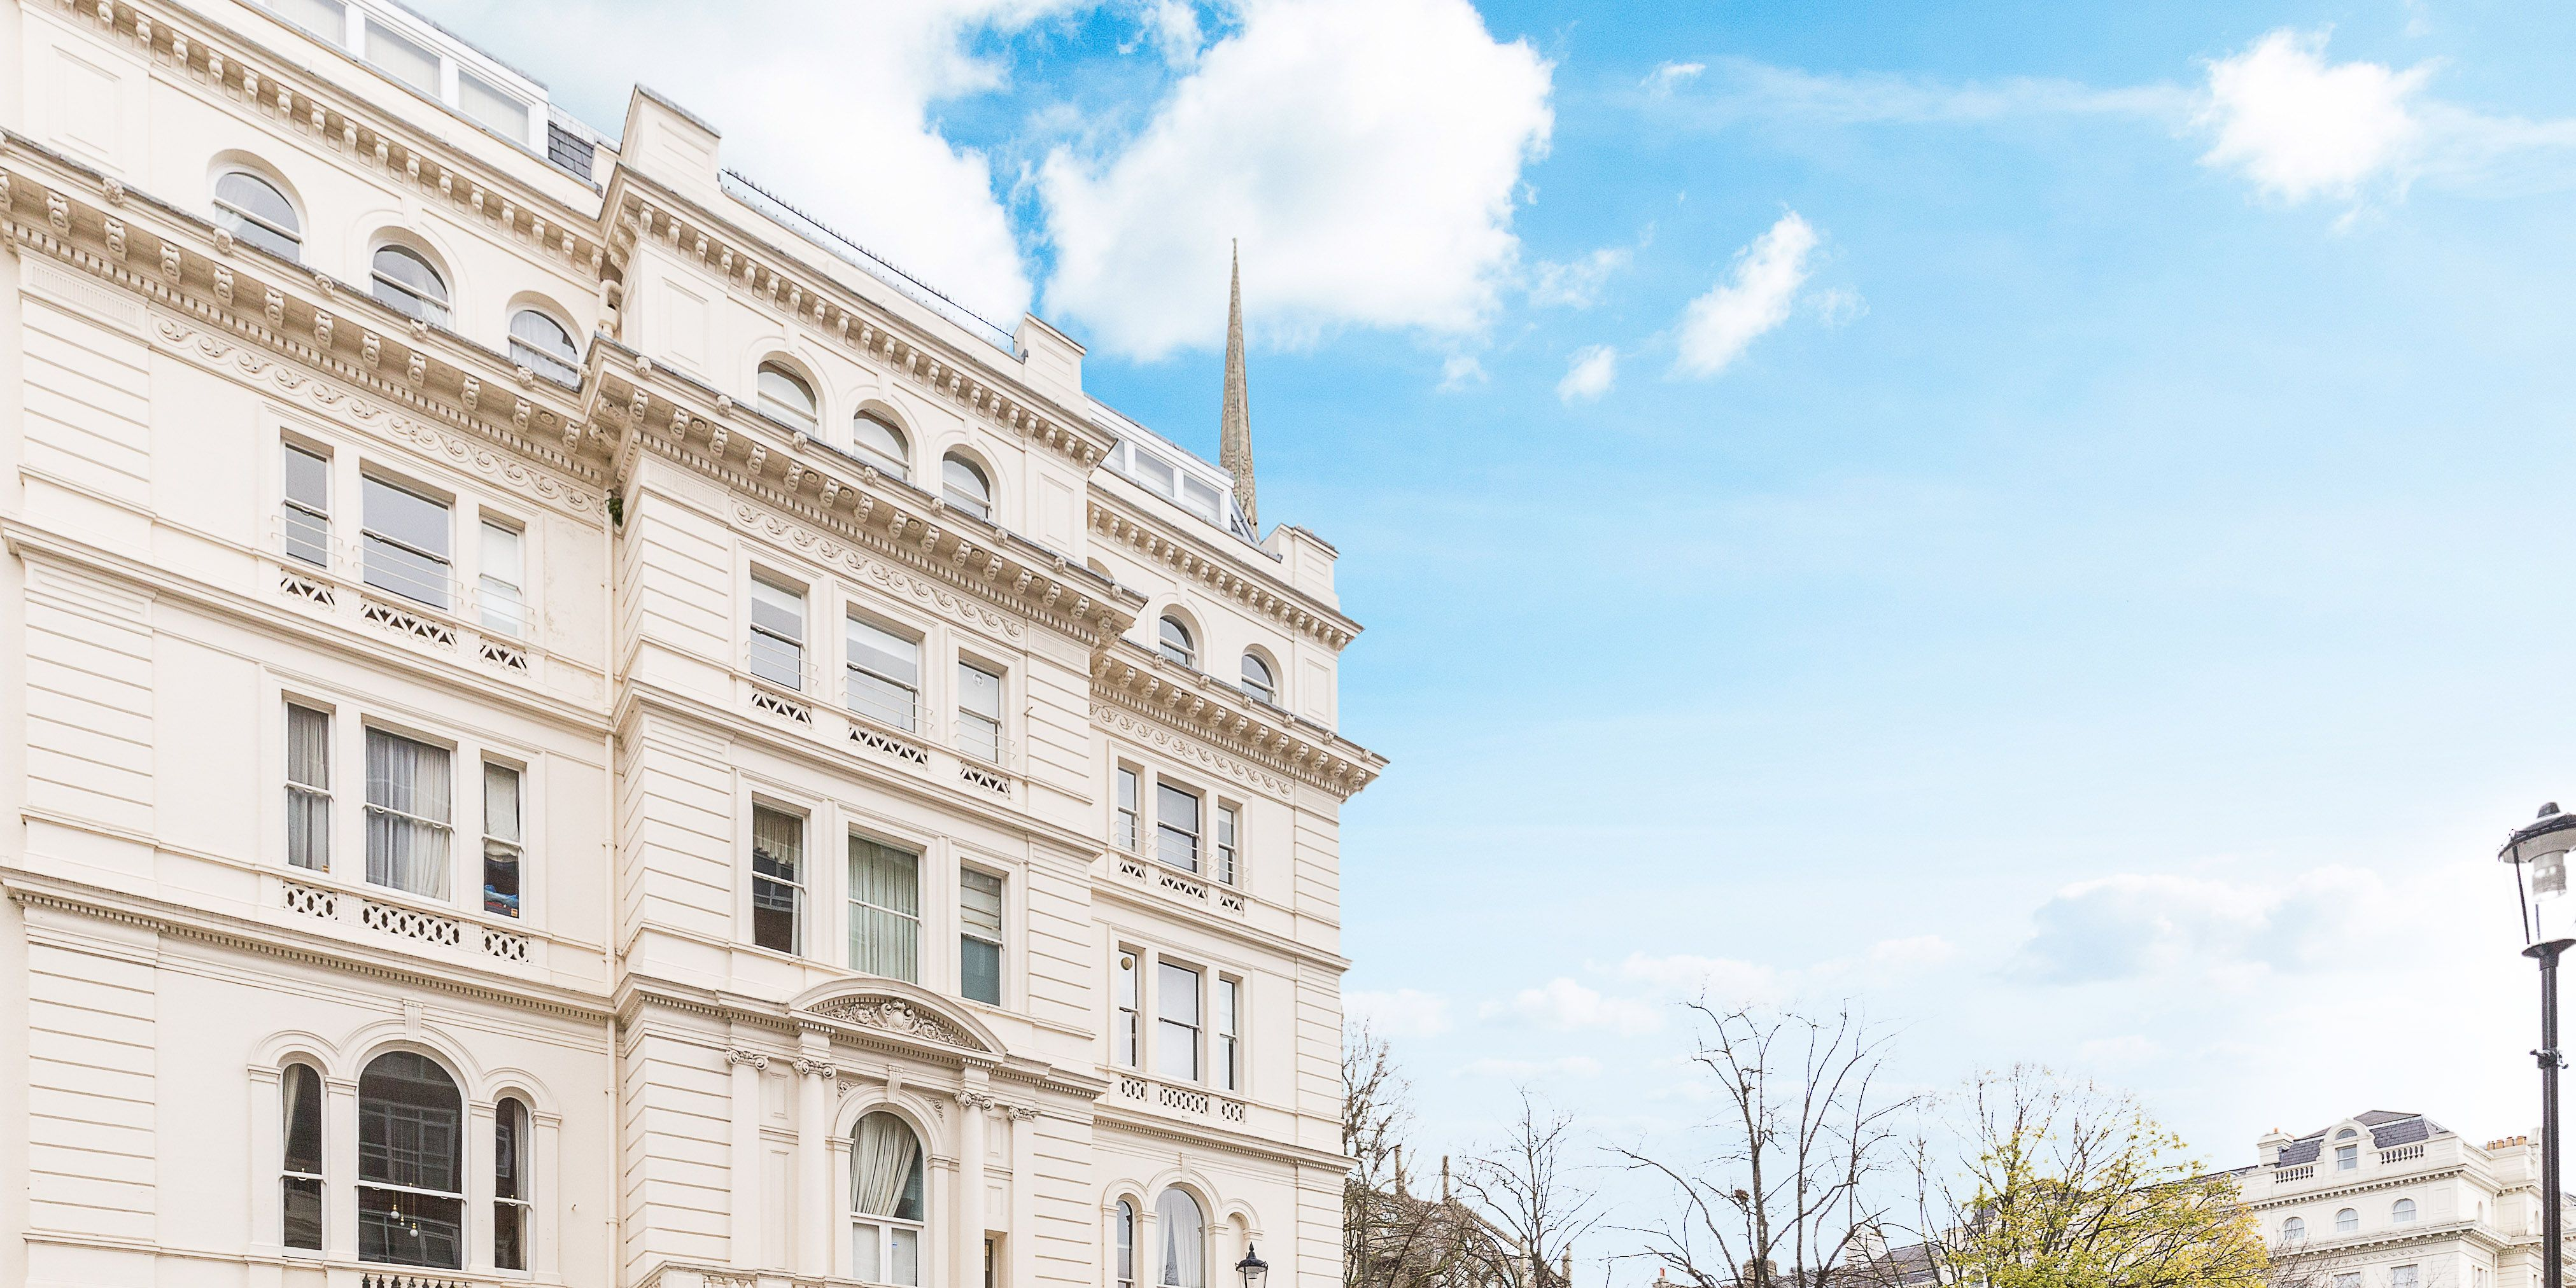 Lancaster Gate - London - Alexander Murray - front - Kay & Co